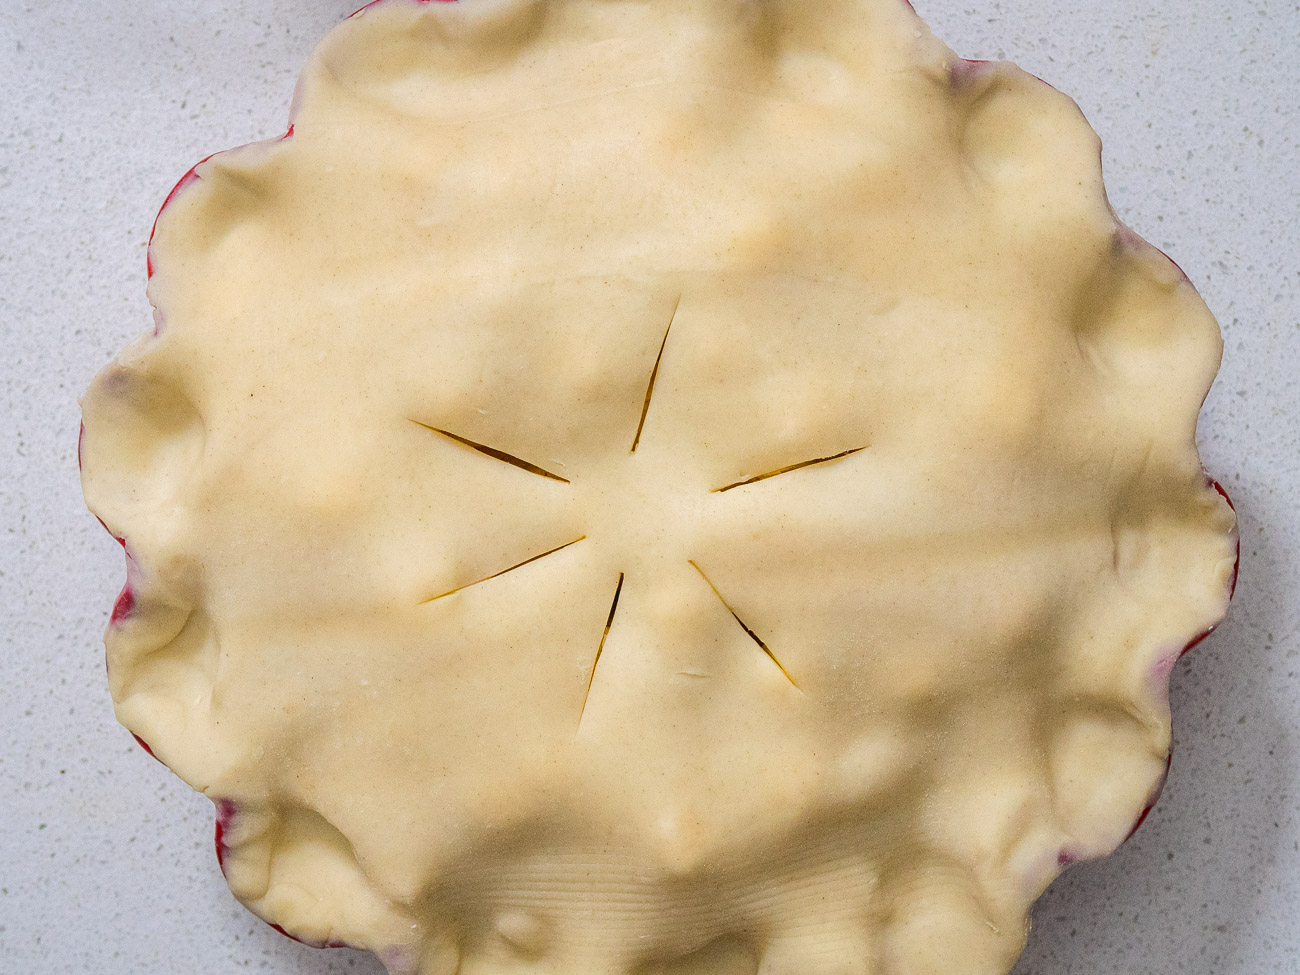 Carefully lay the other crust over the filling. Trim the excess crust from around the edges. Cut slits in the top to form steam vents. Crimp the edges to seal.